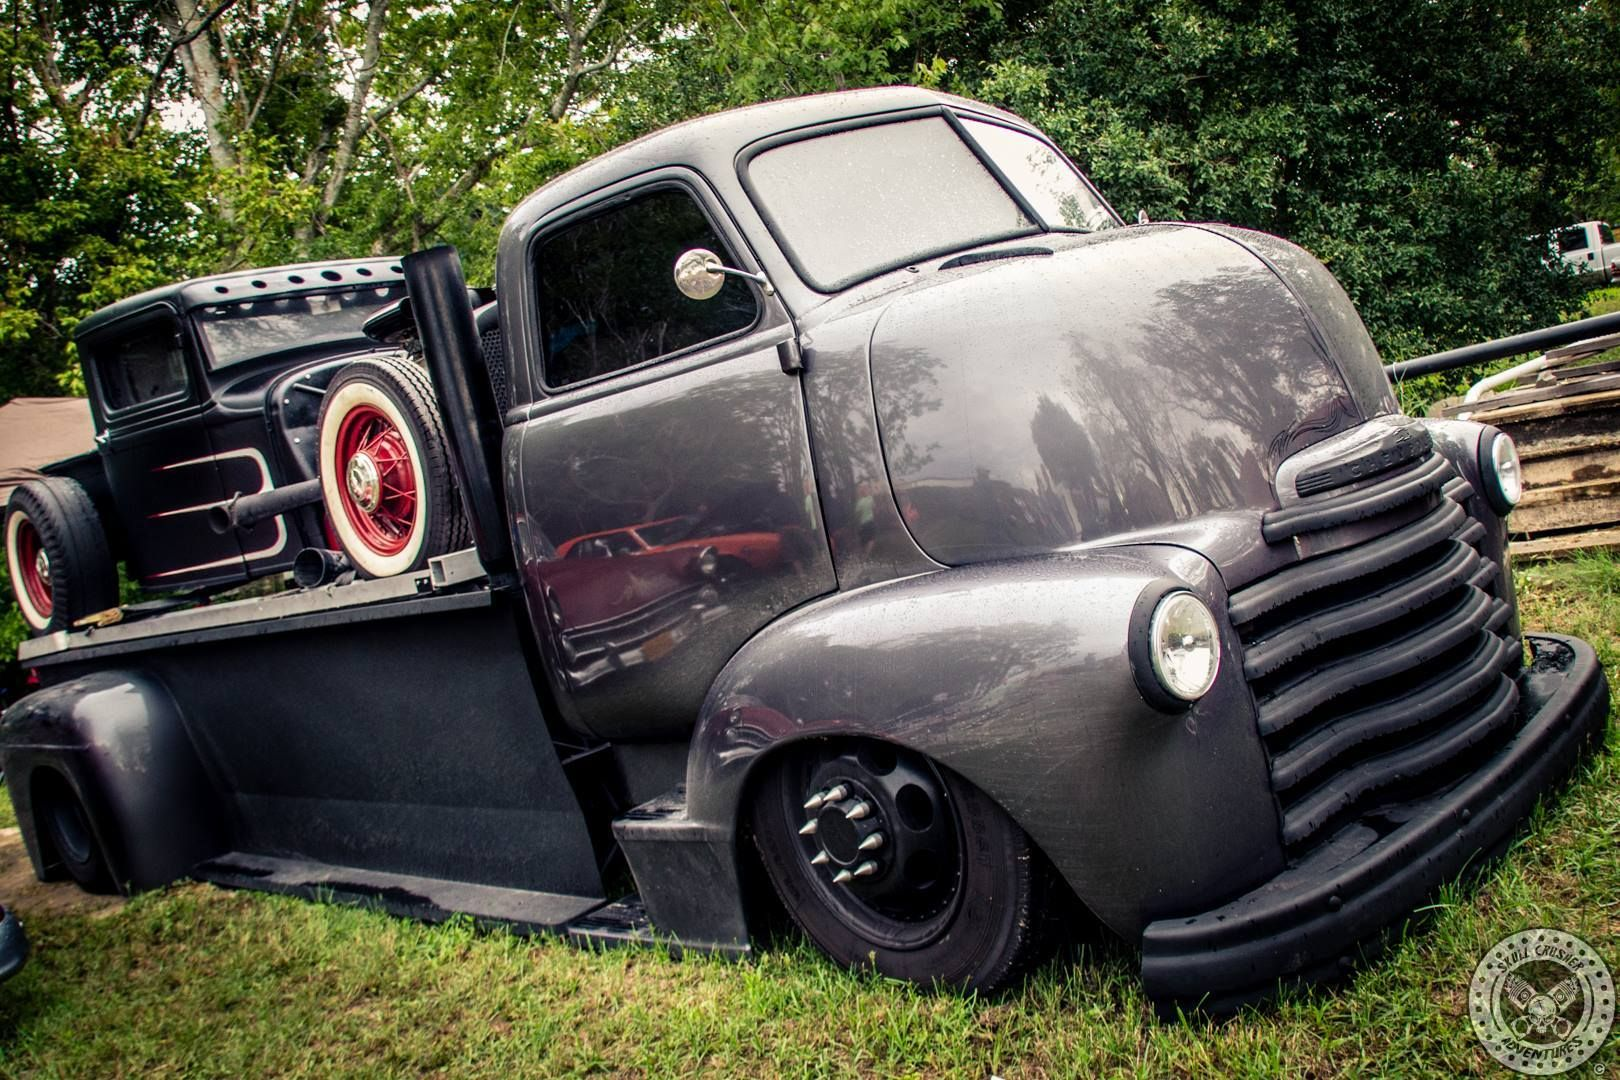 hight resolution of chevy chevrolet advanced desing coe pickup flatbed rolloff with a traditional pickup truck hotrod on the back white walls slammed gun metal gray flat